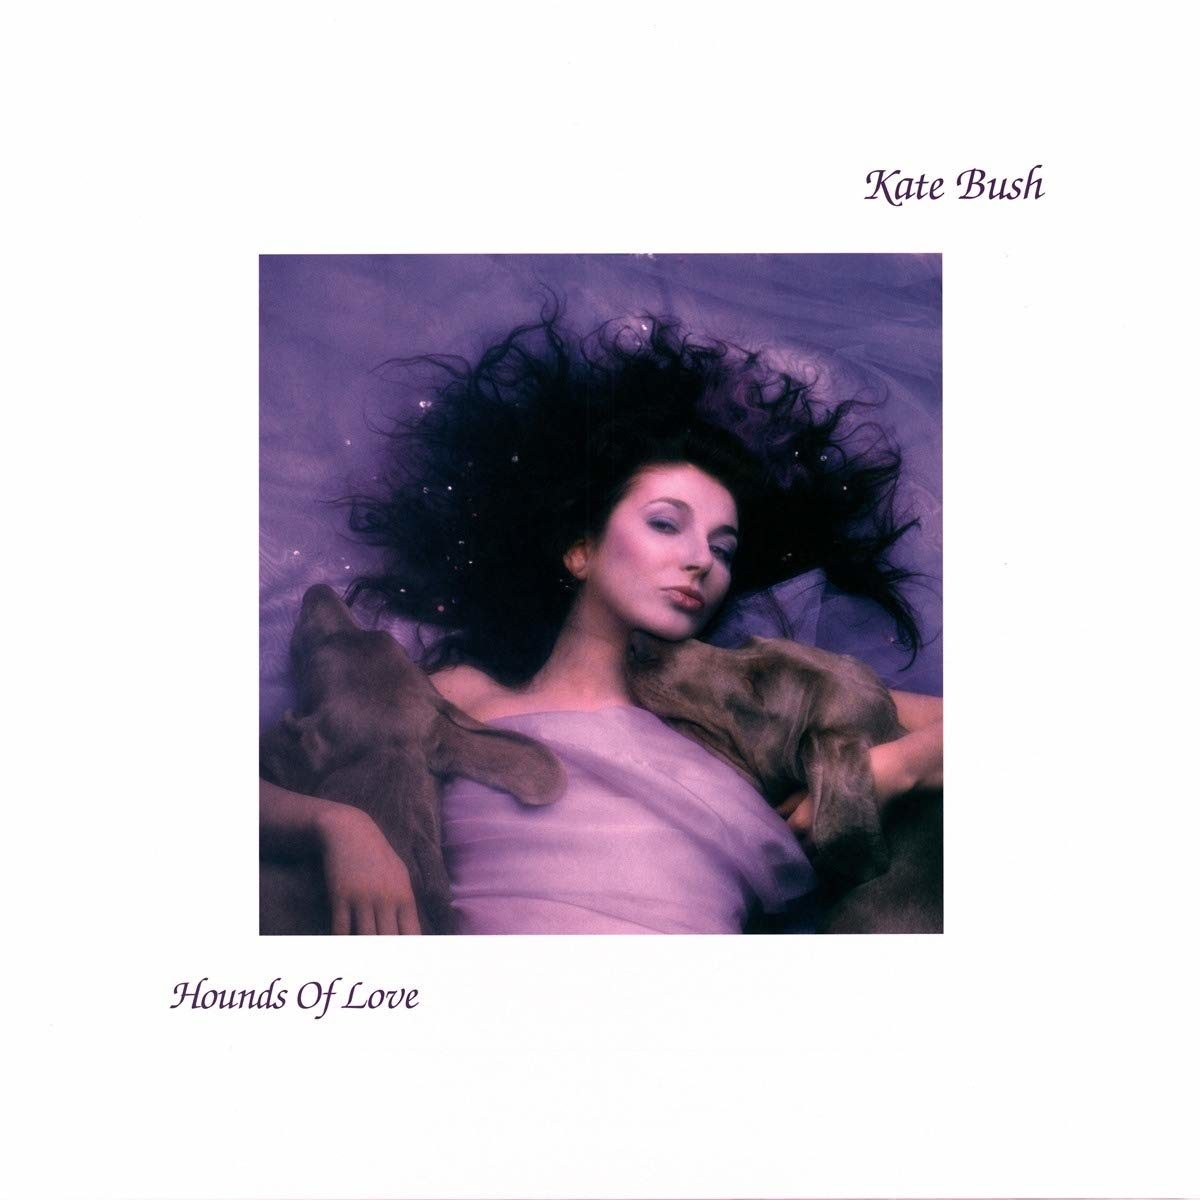 kate-bush-hounds-of-love-1606442542